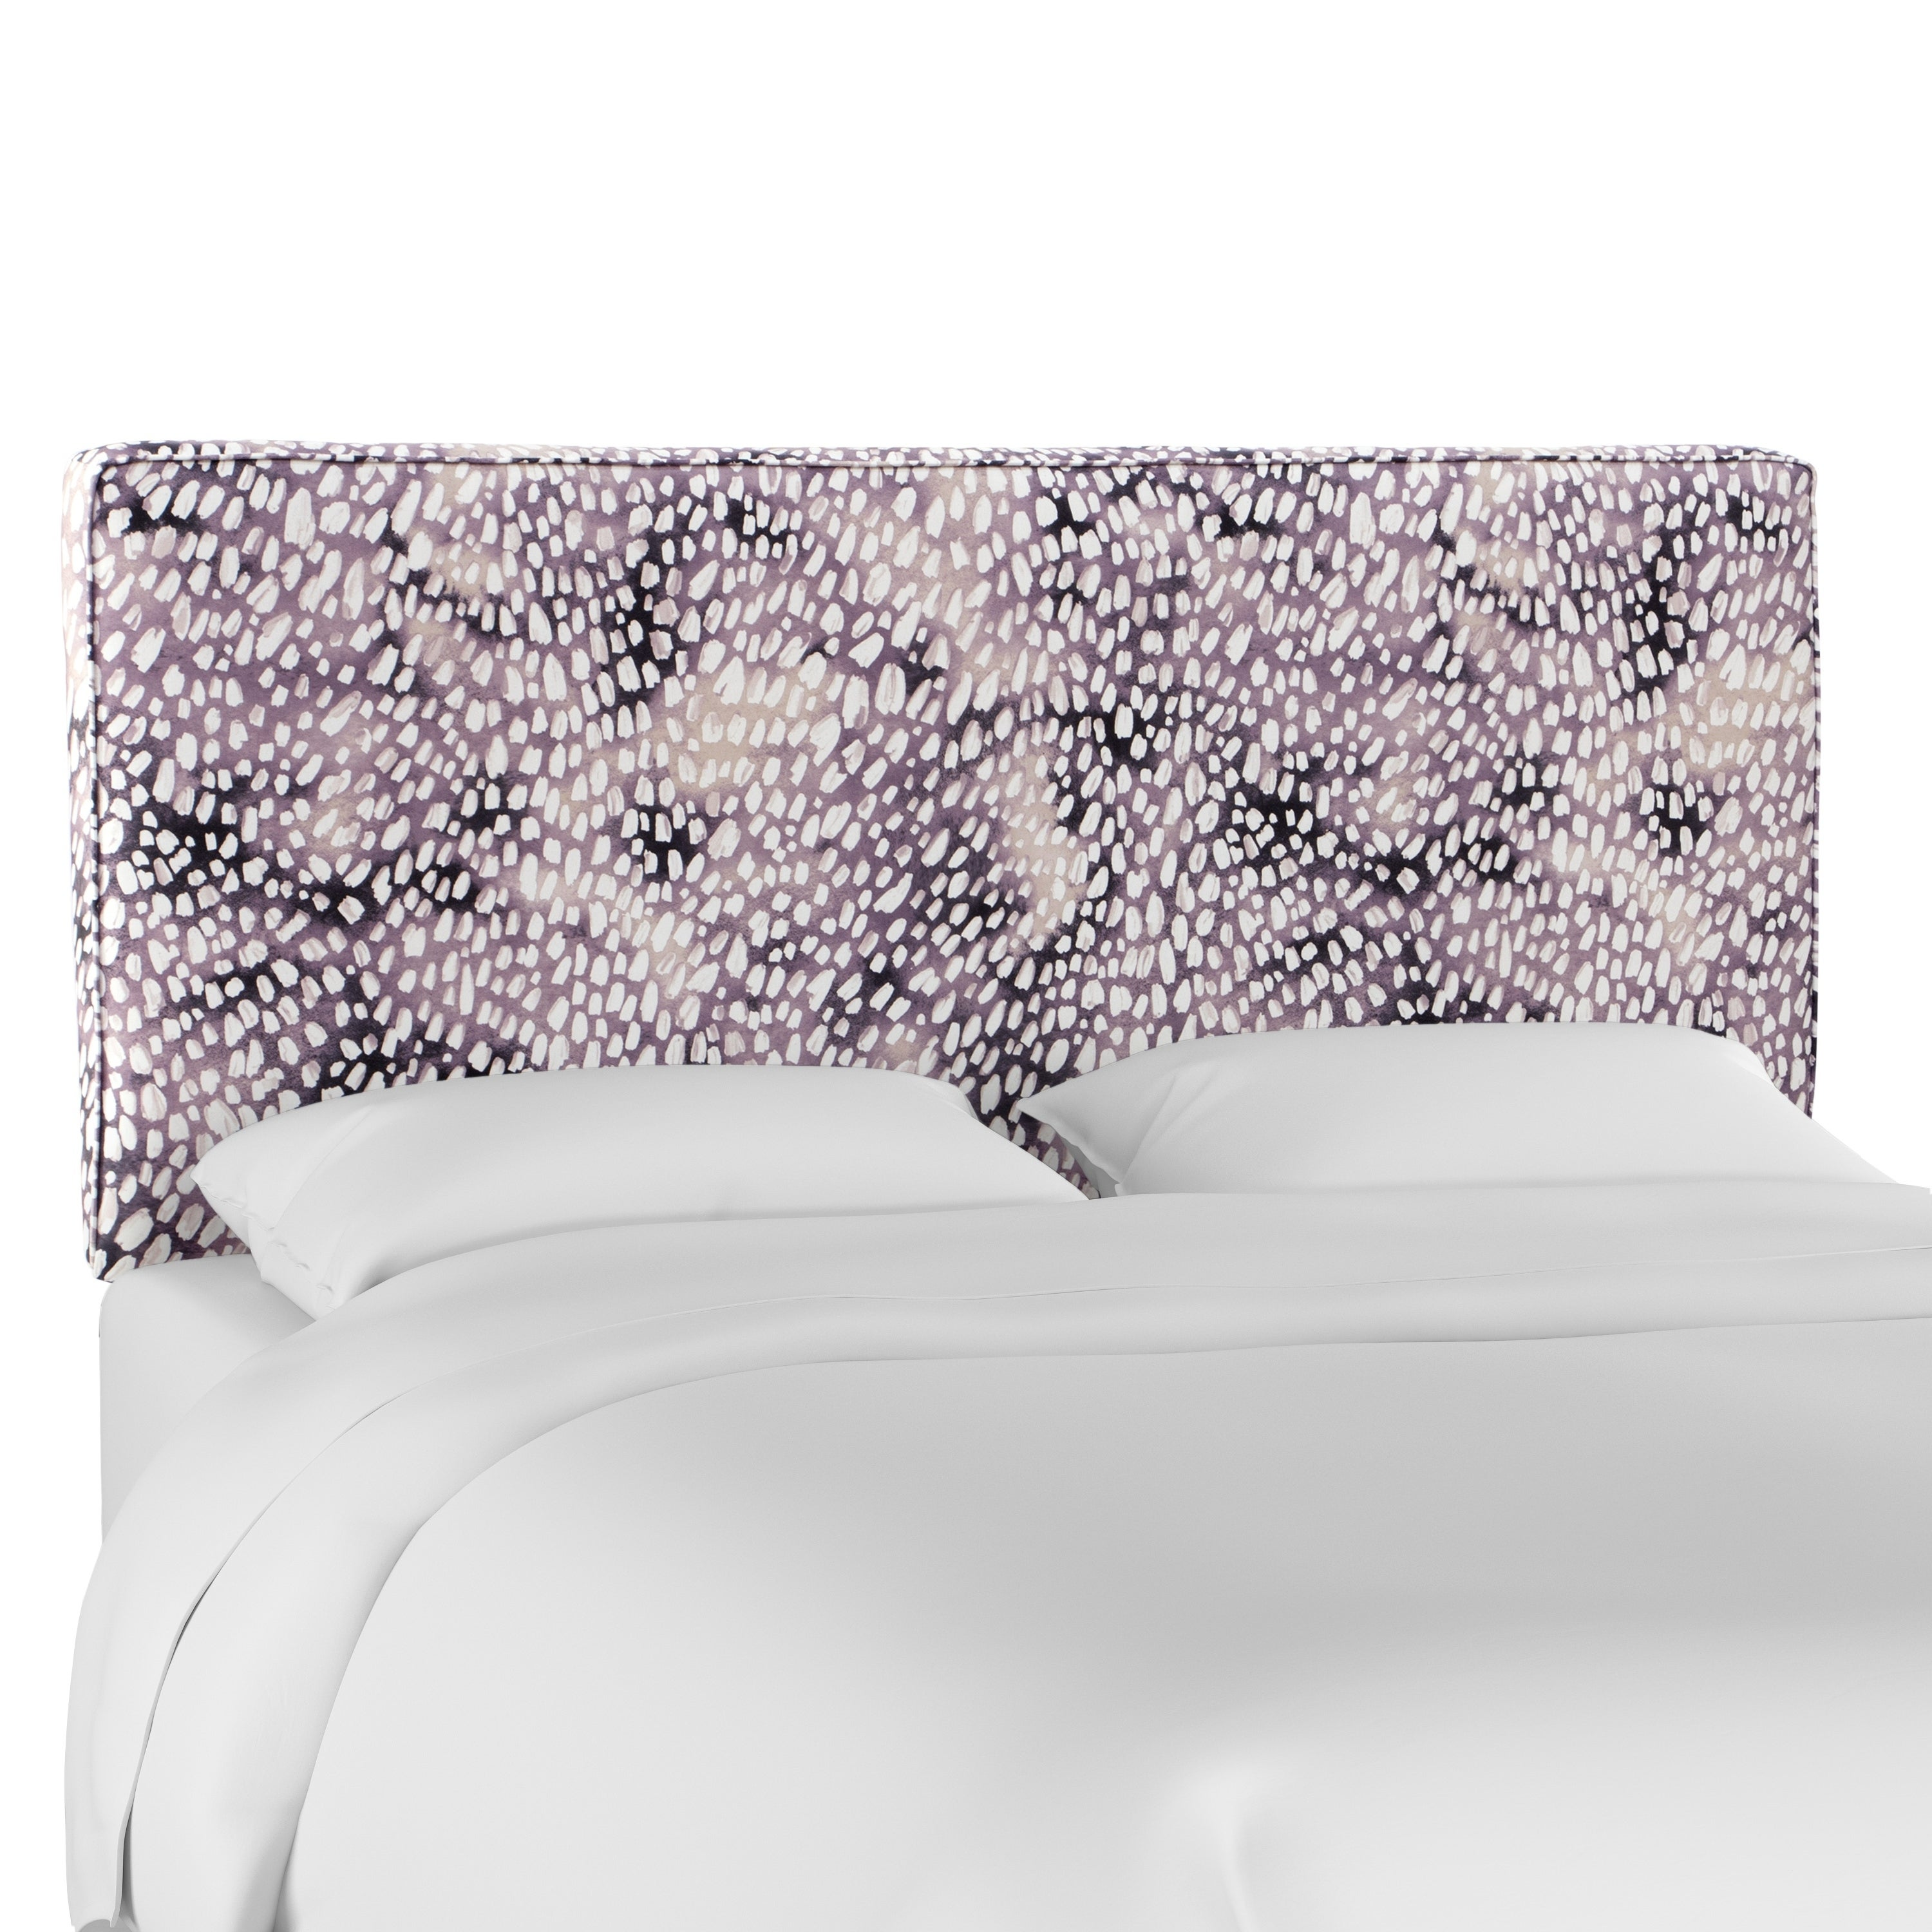 Shop skyline furniture box seam headboard in aqua dot lavender free shipping today overstock com 26414950